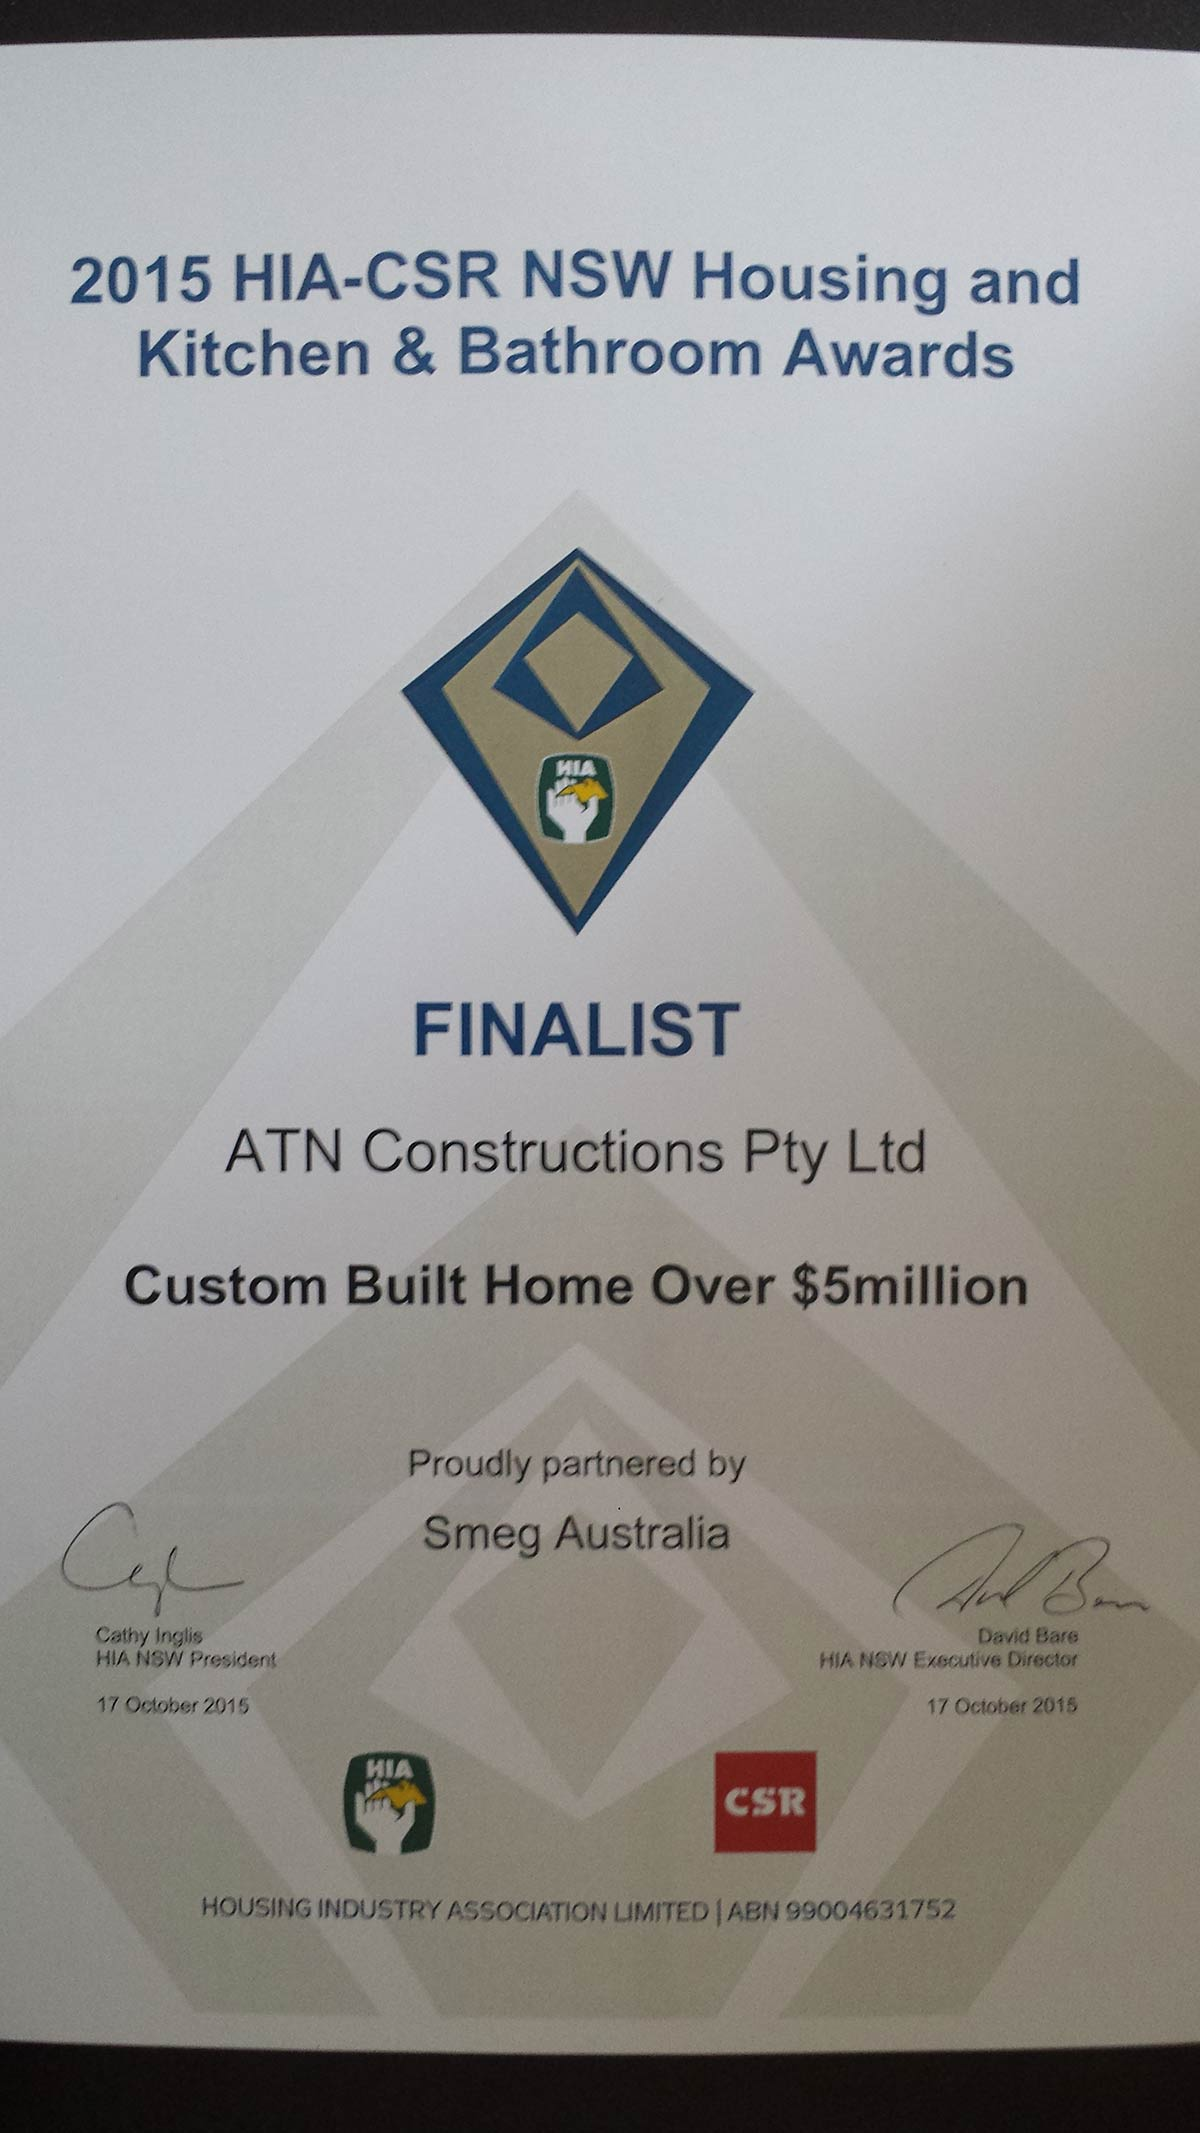 Housing-Awards-2015-atn-constructions